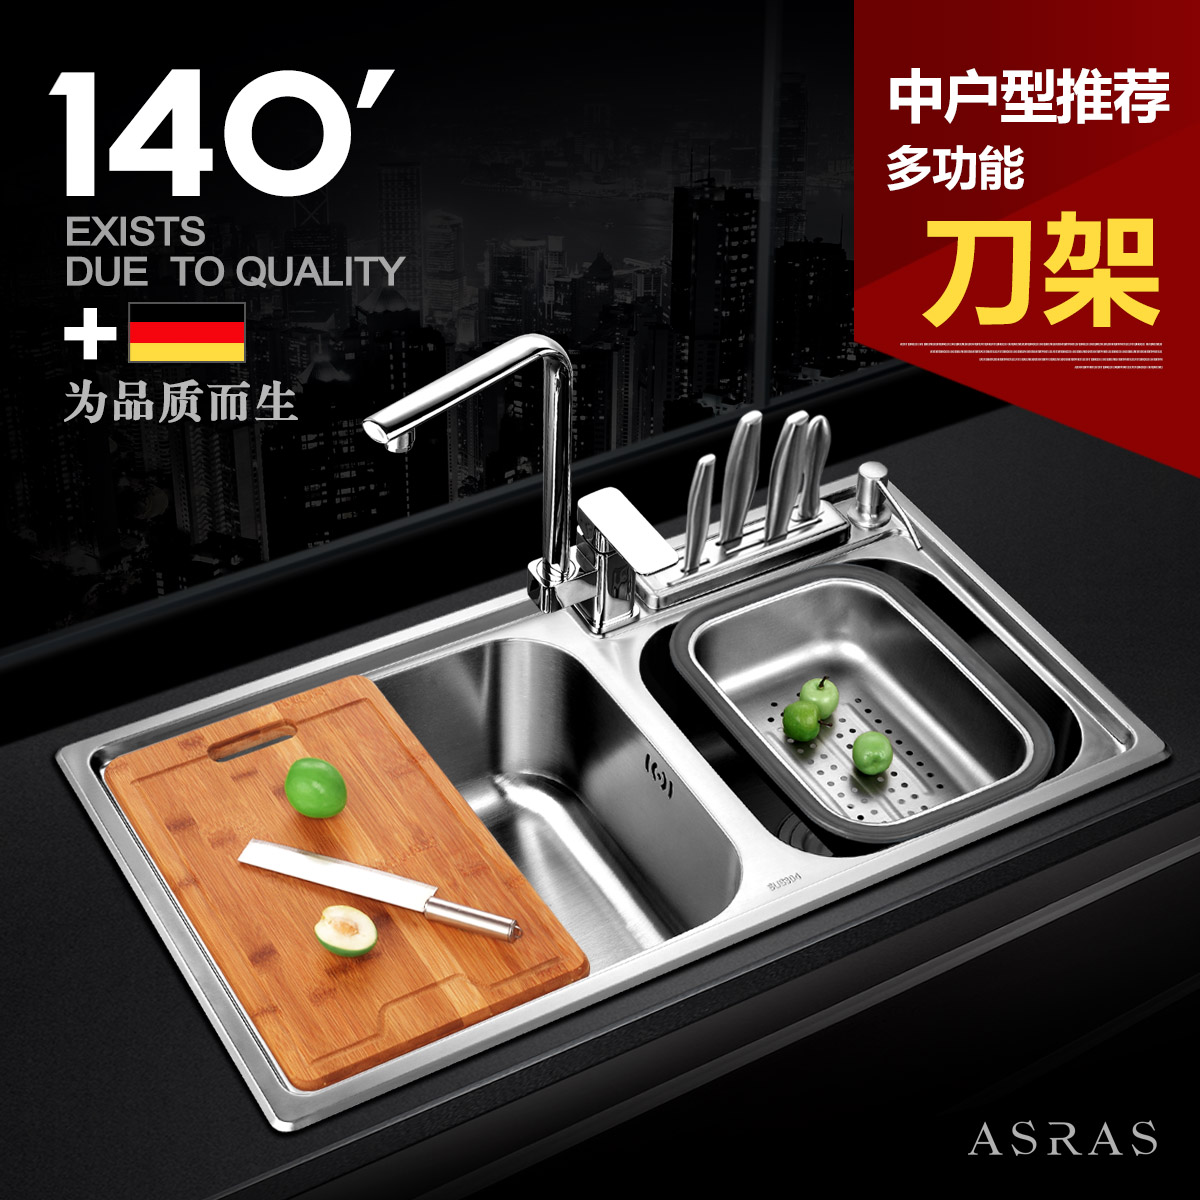 Assas european multifunctional turret 304 thick brushed stainless steel sink dual slot vegetables basin one